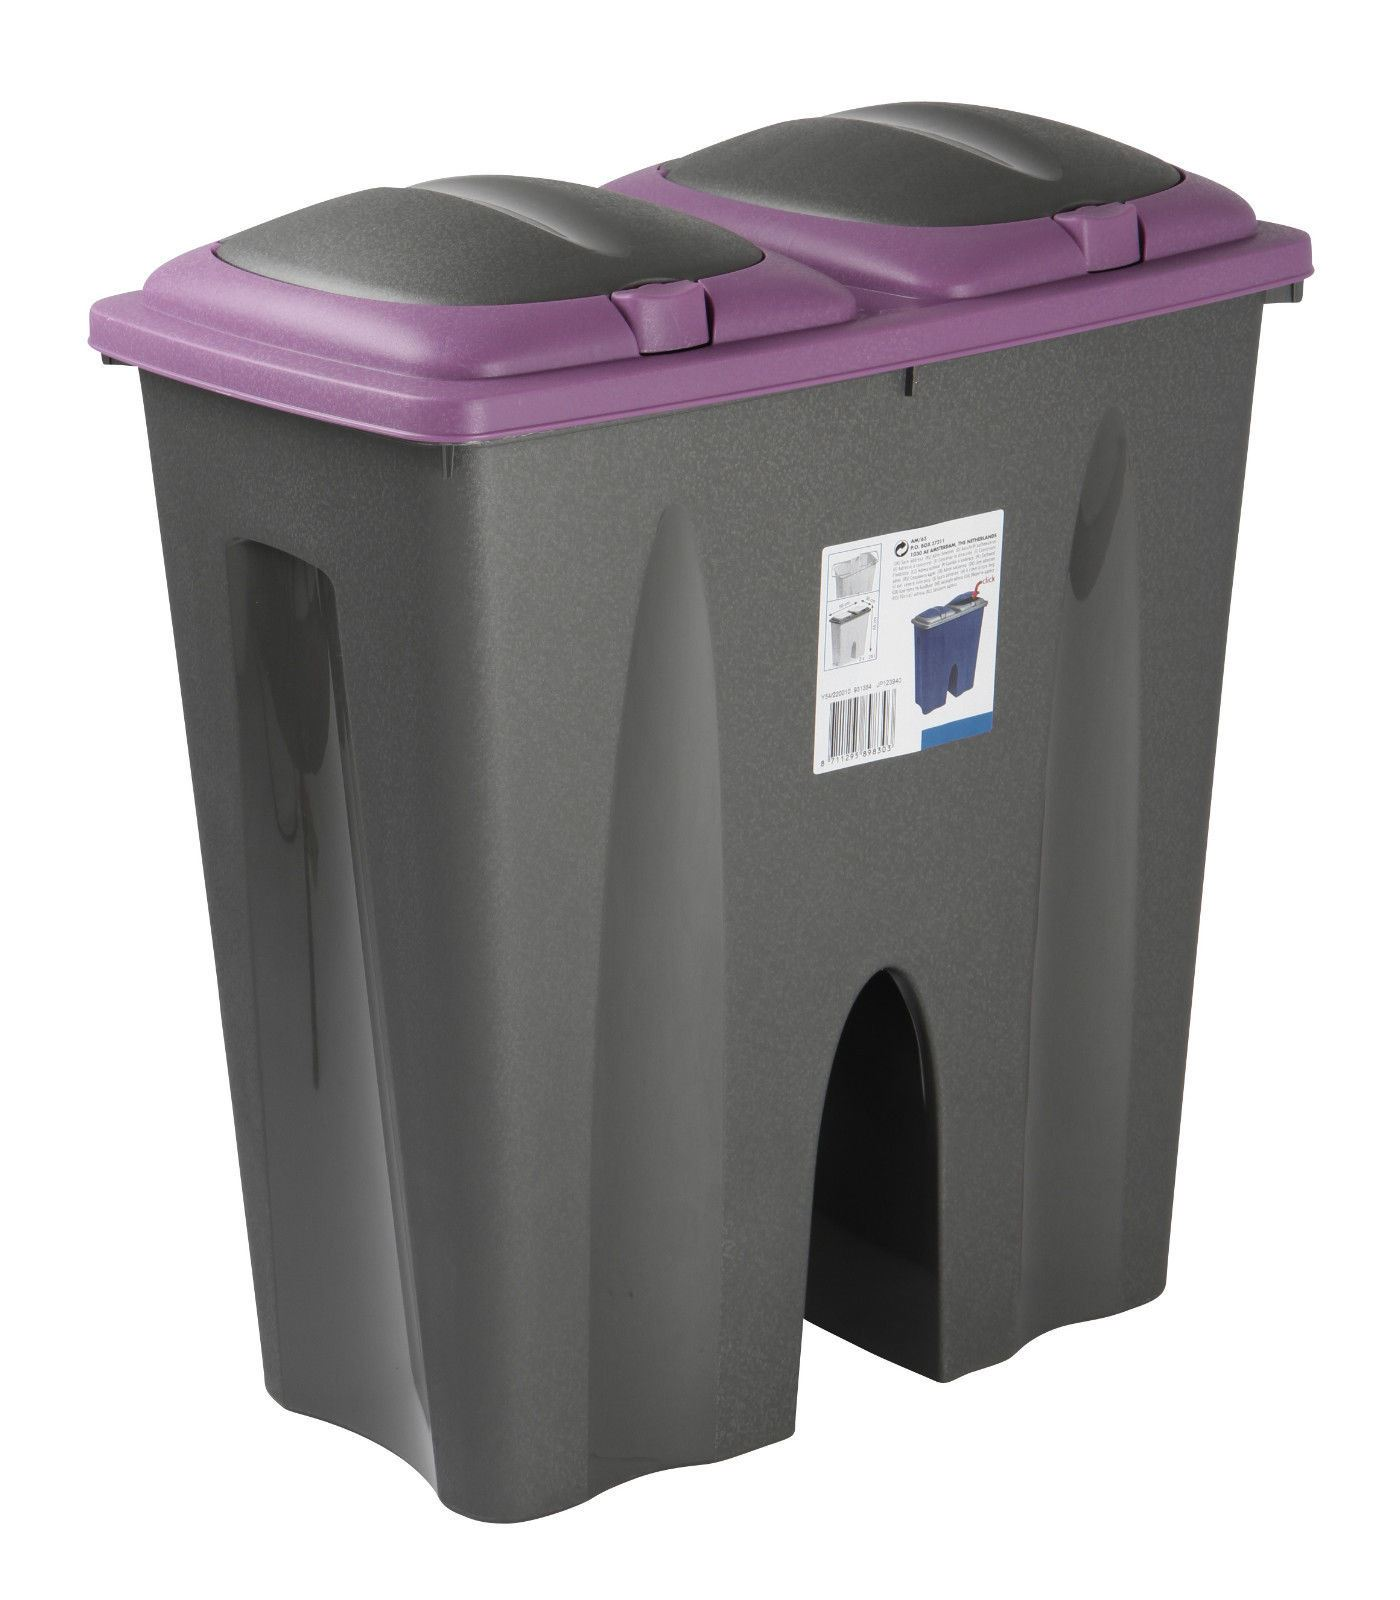 50l duo bin waste garbage trash can separator double side recycle dustbin 2x 25l ebay. Black Bedroom Furniture Sets. Home Design Ideas